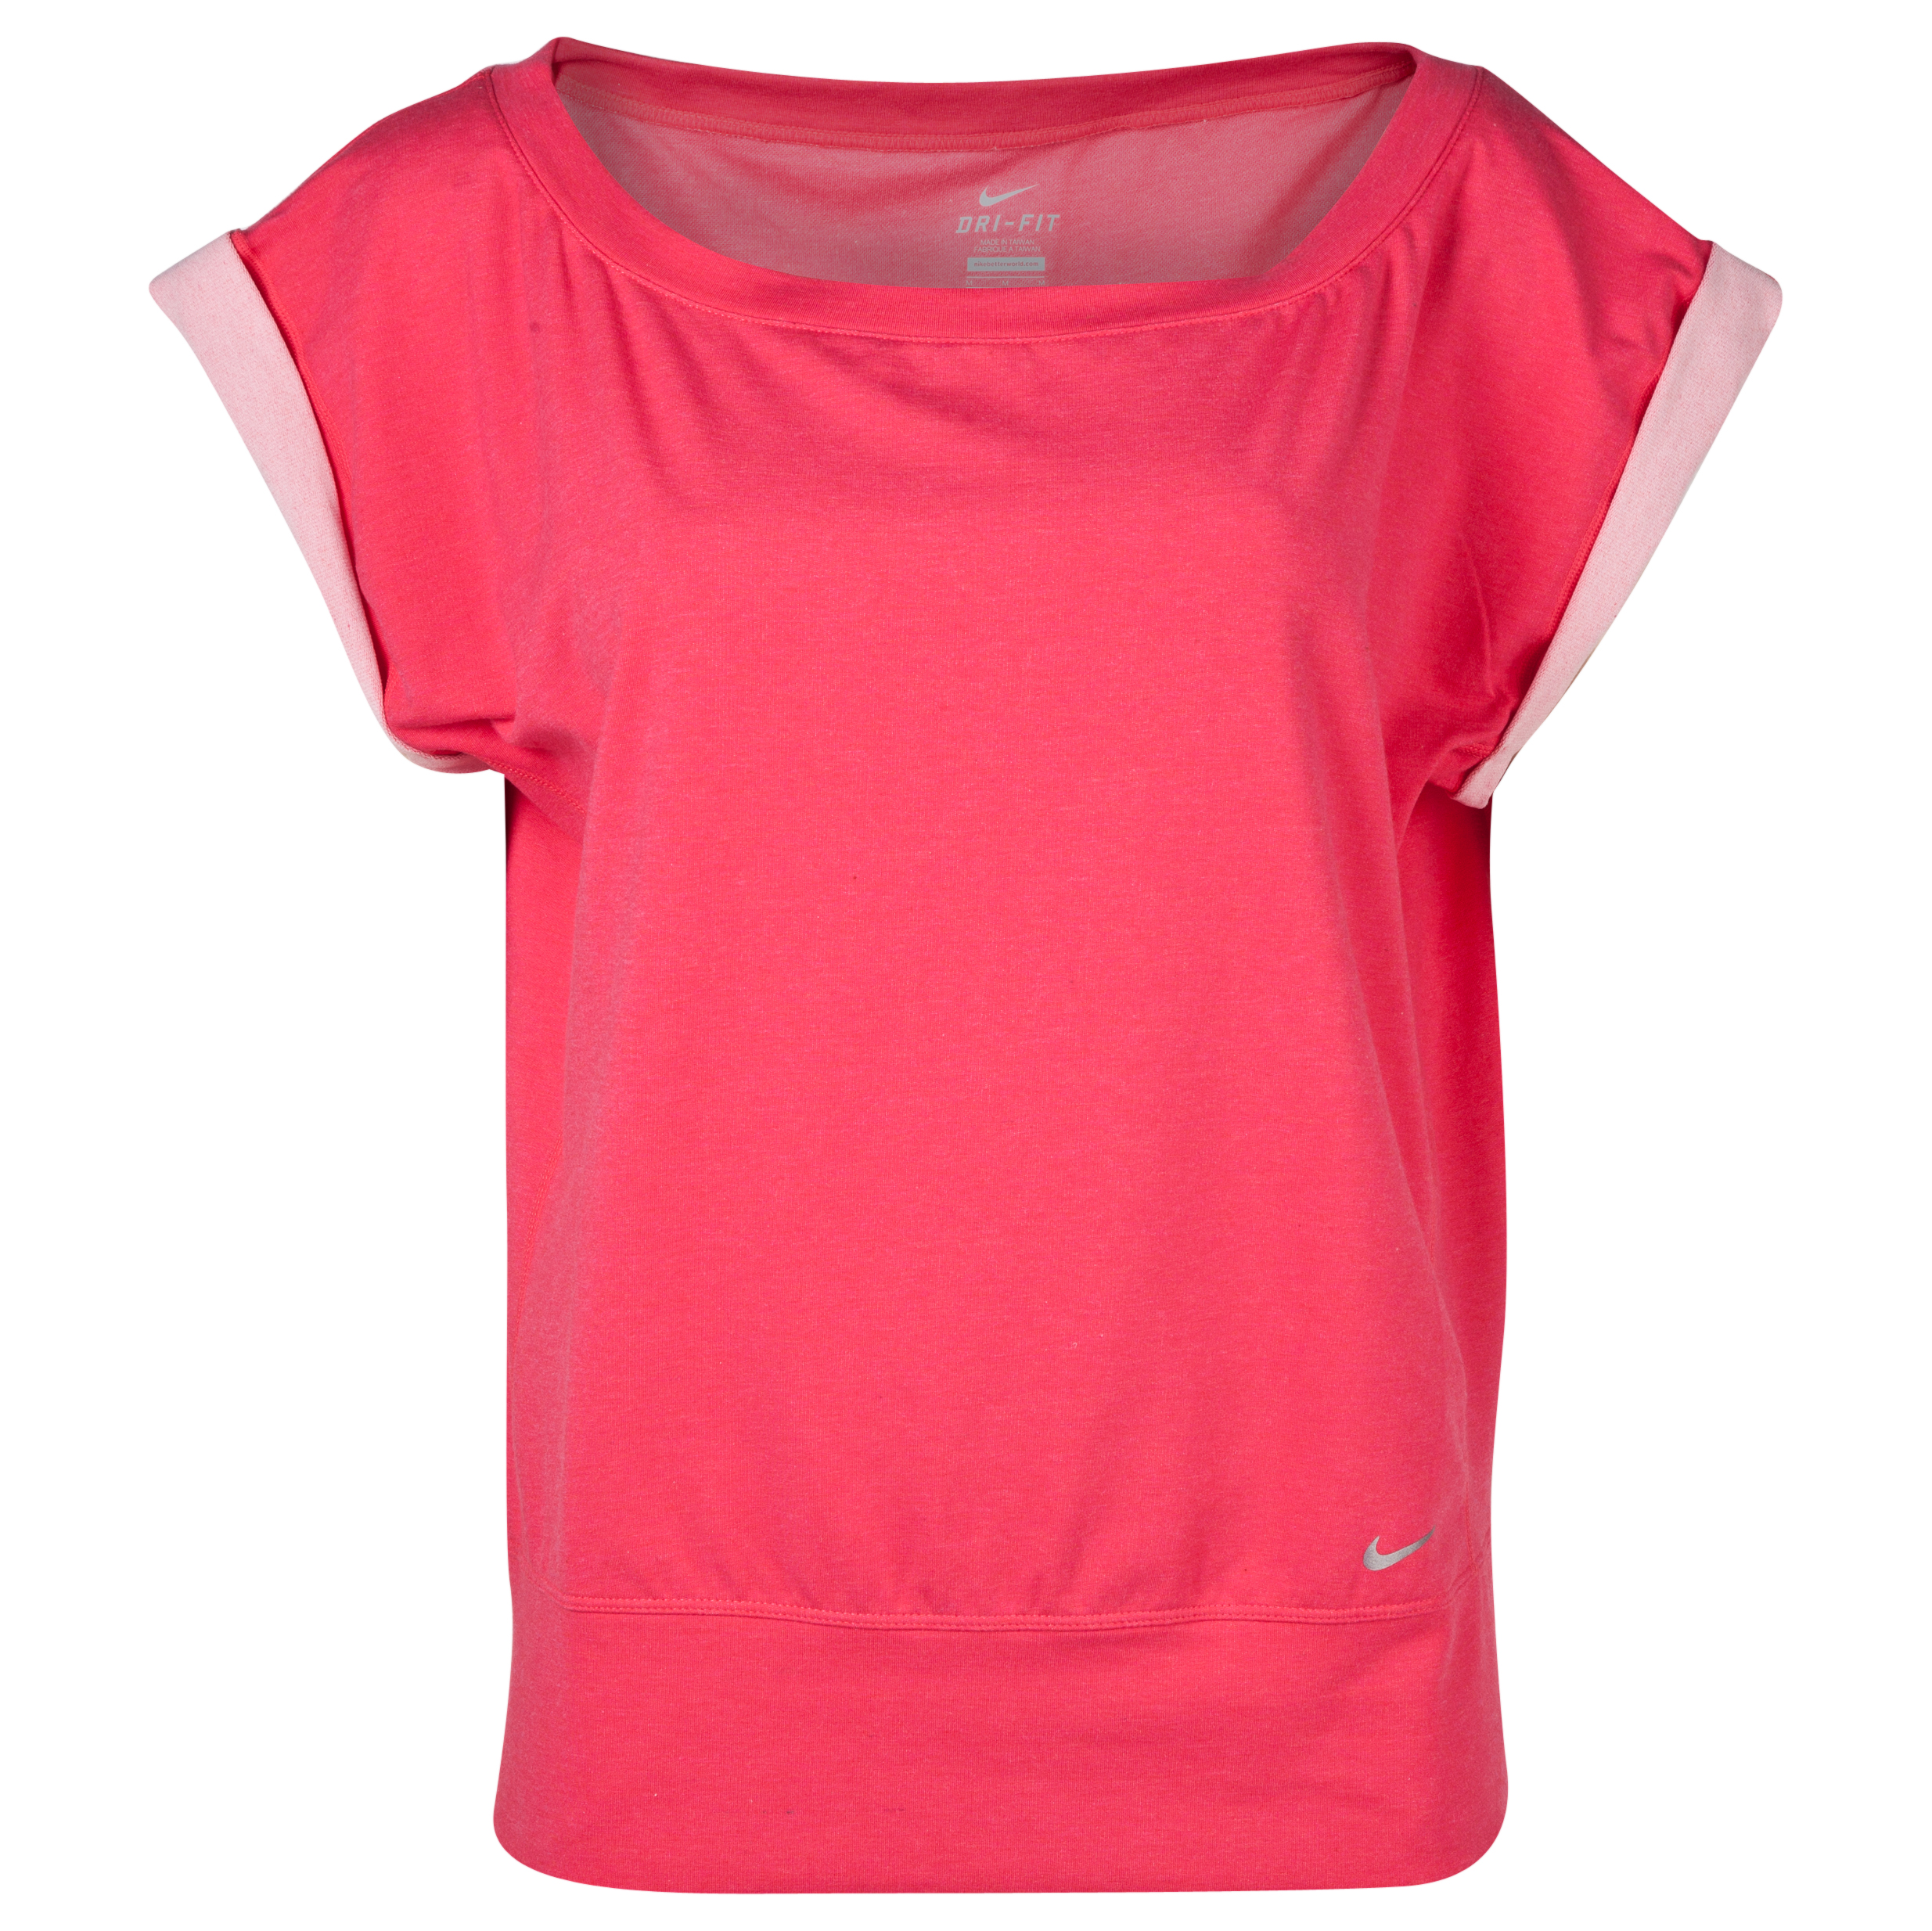 Nike Vapor Short Sleeve Epic Crew - Pink - Womens